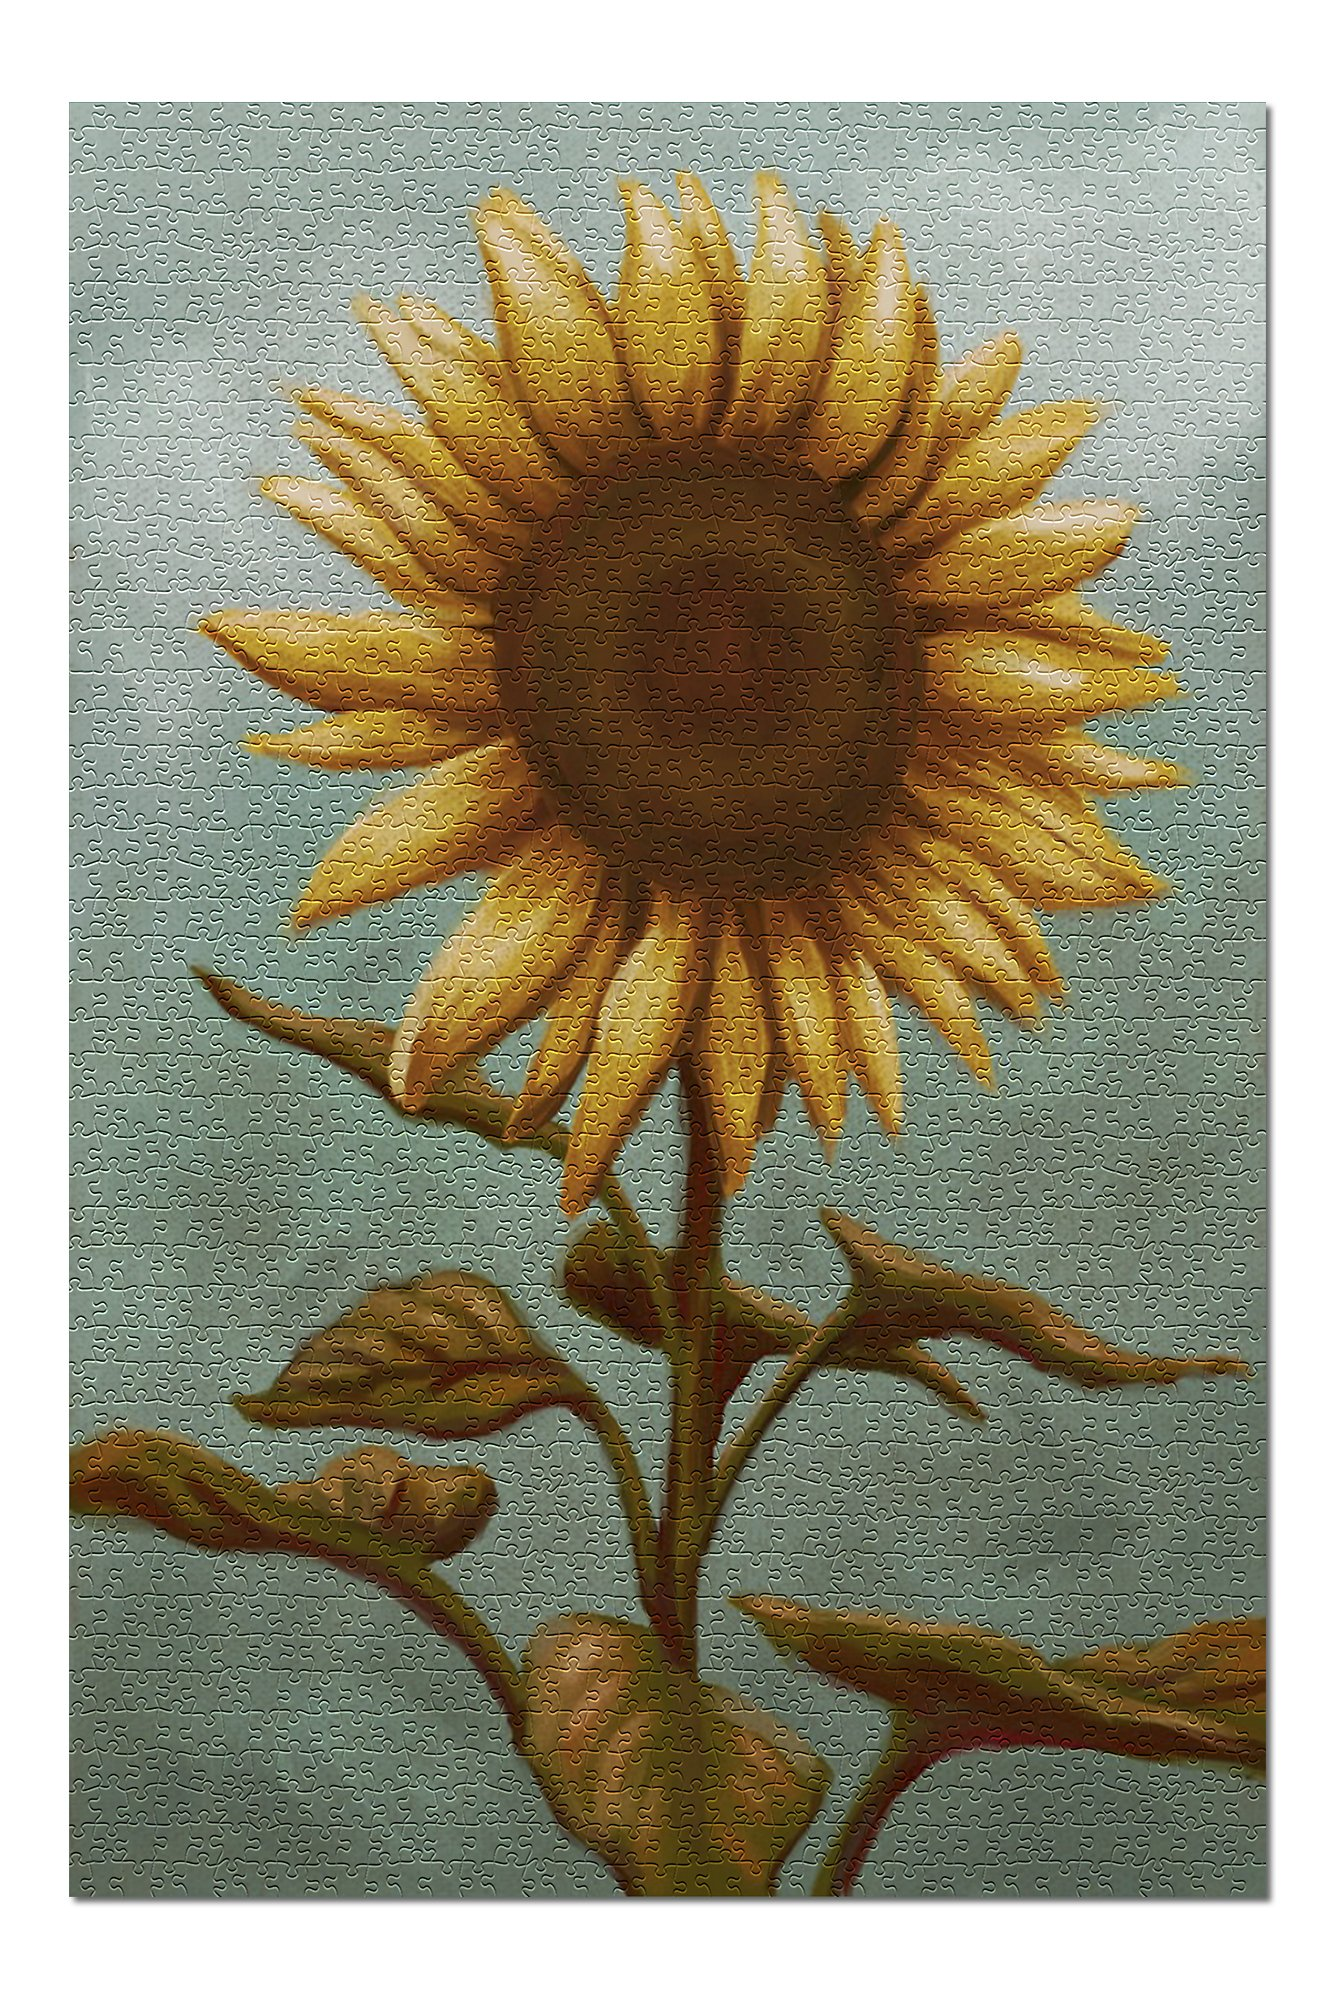 Sunflower - Oil Painting (Premium 1000 Piece Jigsaw Puzzle for Adults, 20x30, Made in USA!)